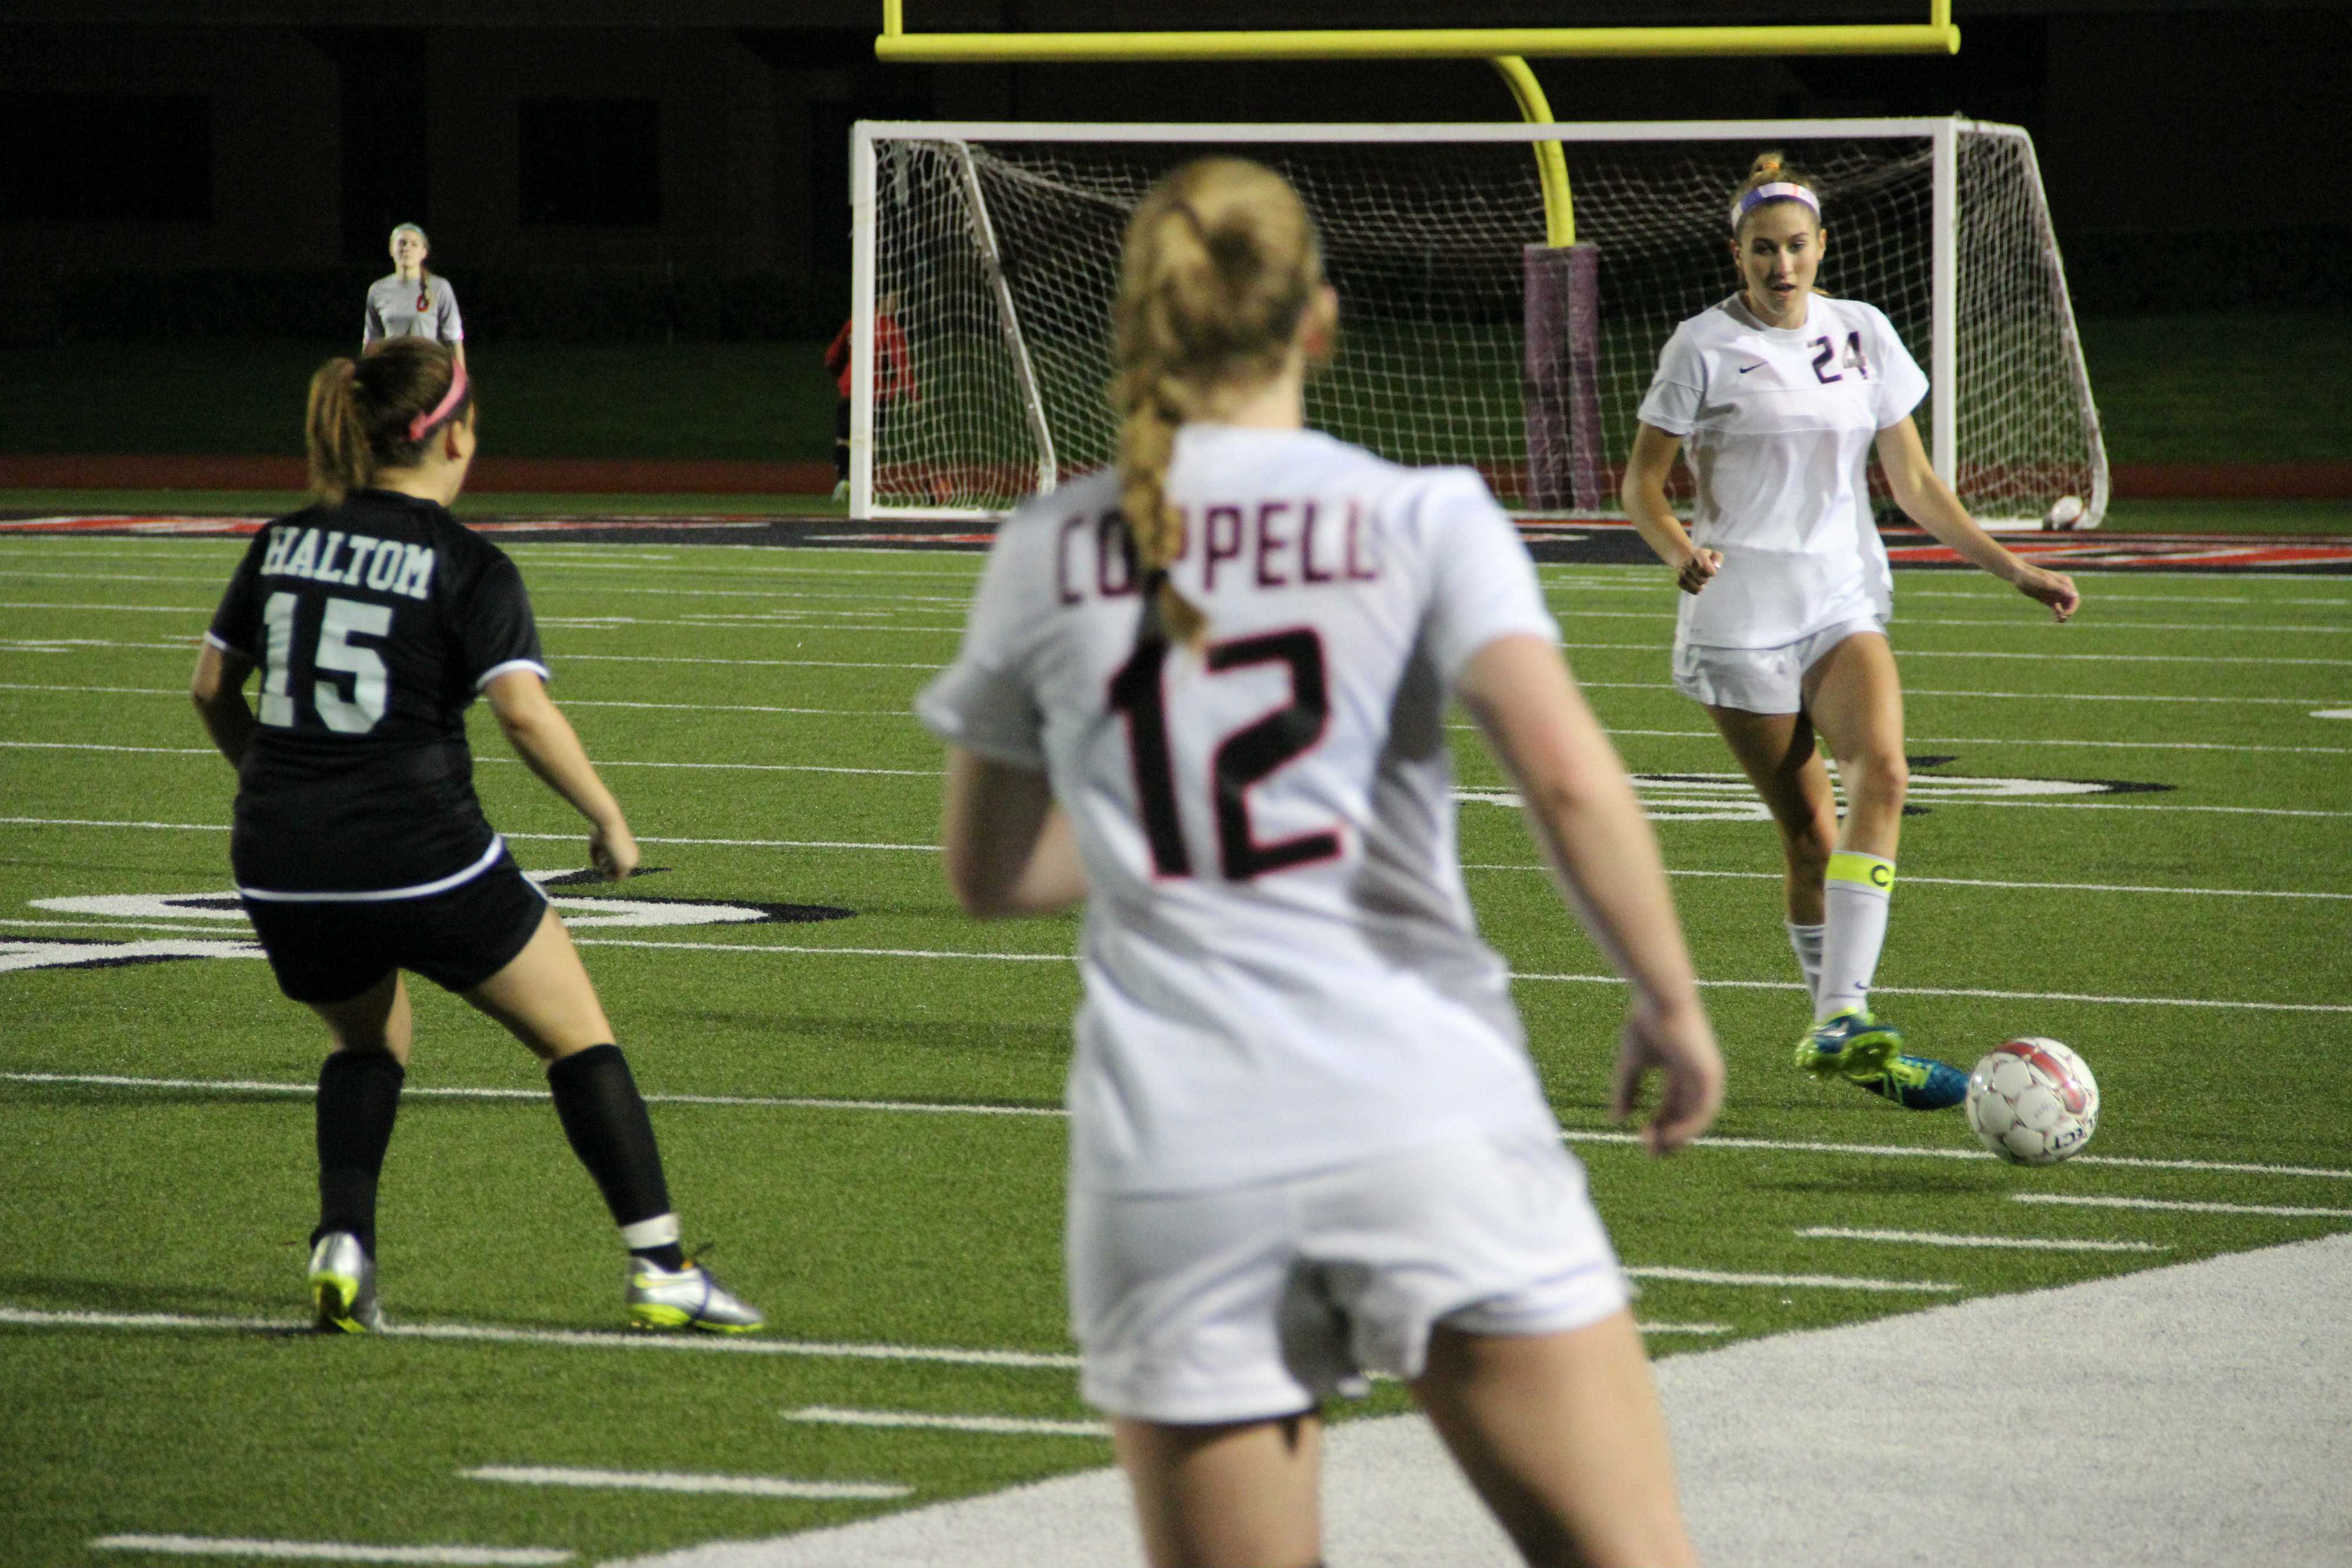 Coppell senior Emma Jett passes to senior Caitlyn Hiller during the first half of Friday's game against Haltom. Jett scored two goals as the Cowgirls cruised to  a 12-0 win. Photo by Ayoung Jo.